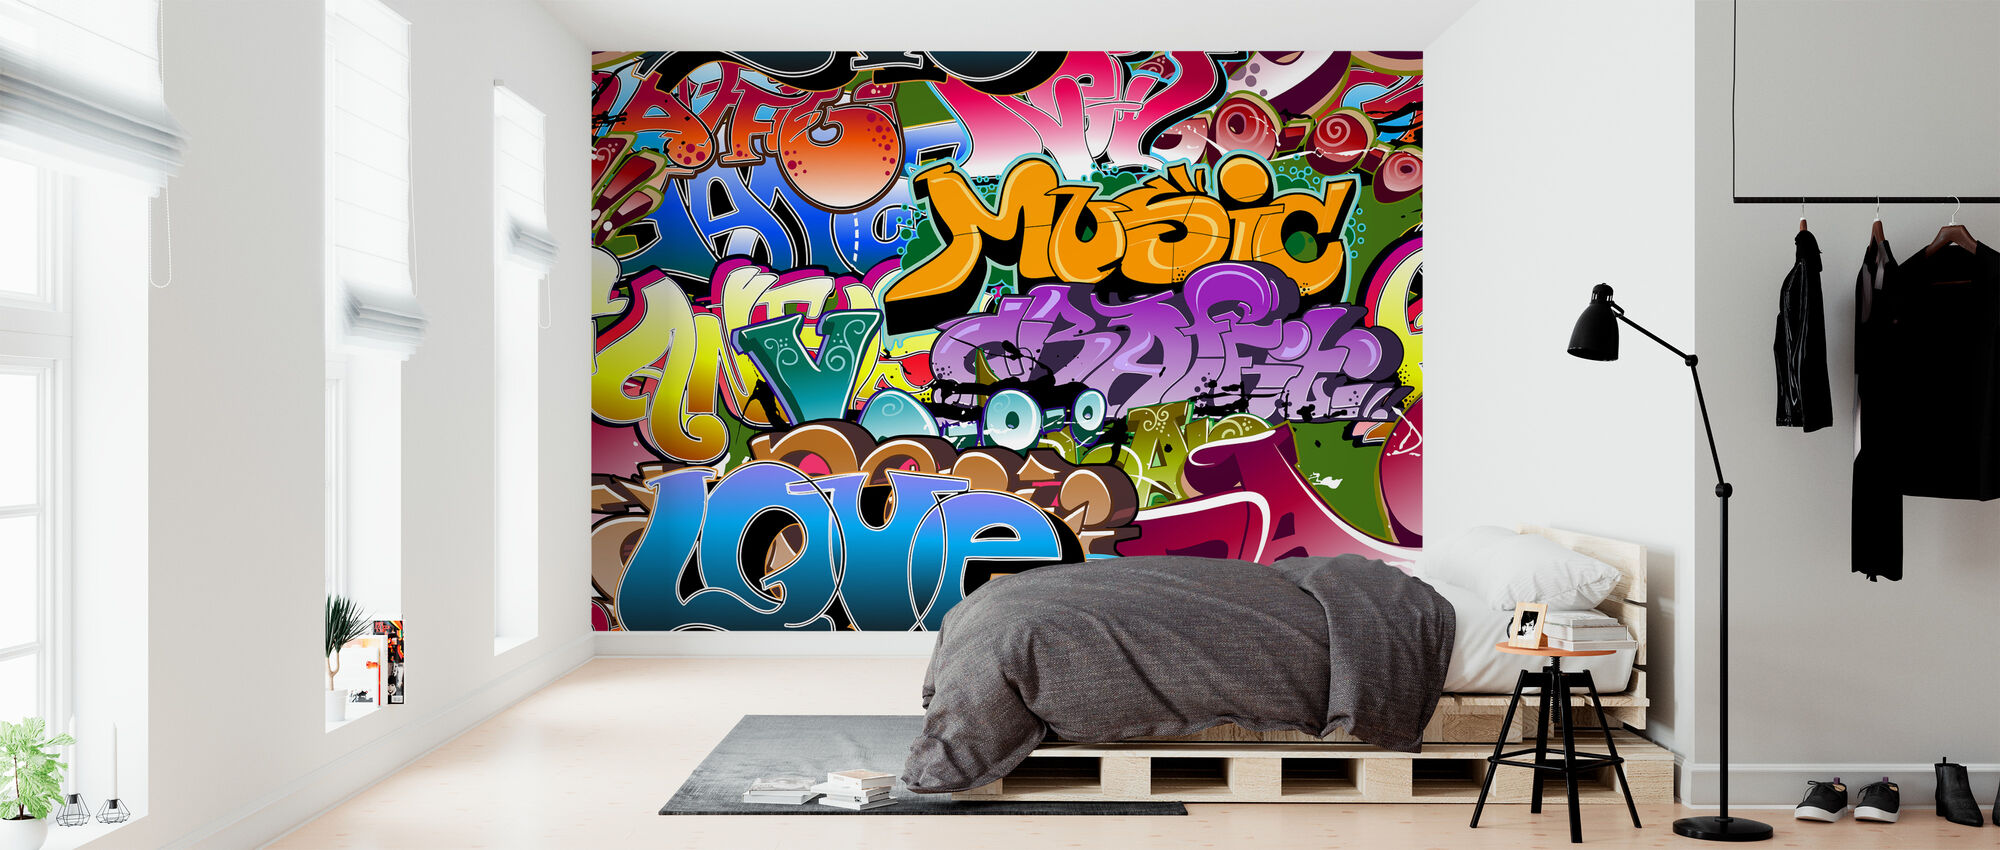 Music Love Graffiti - Wallpaper - Bedroom